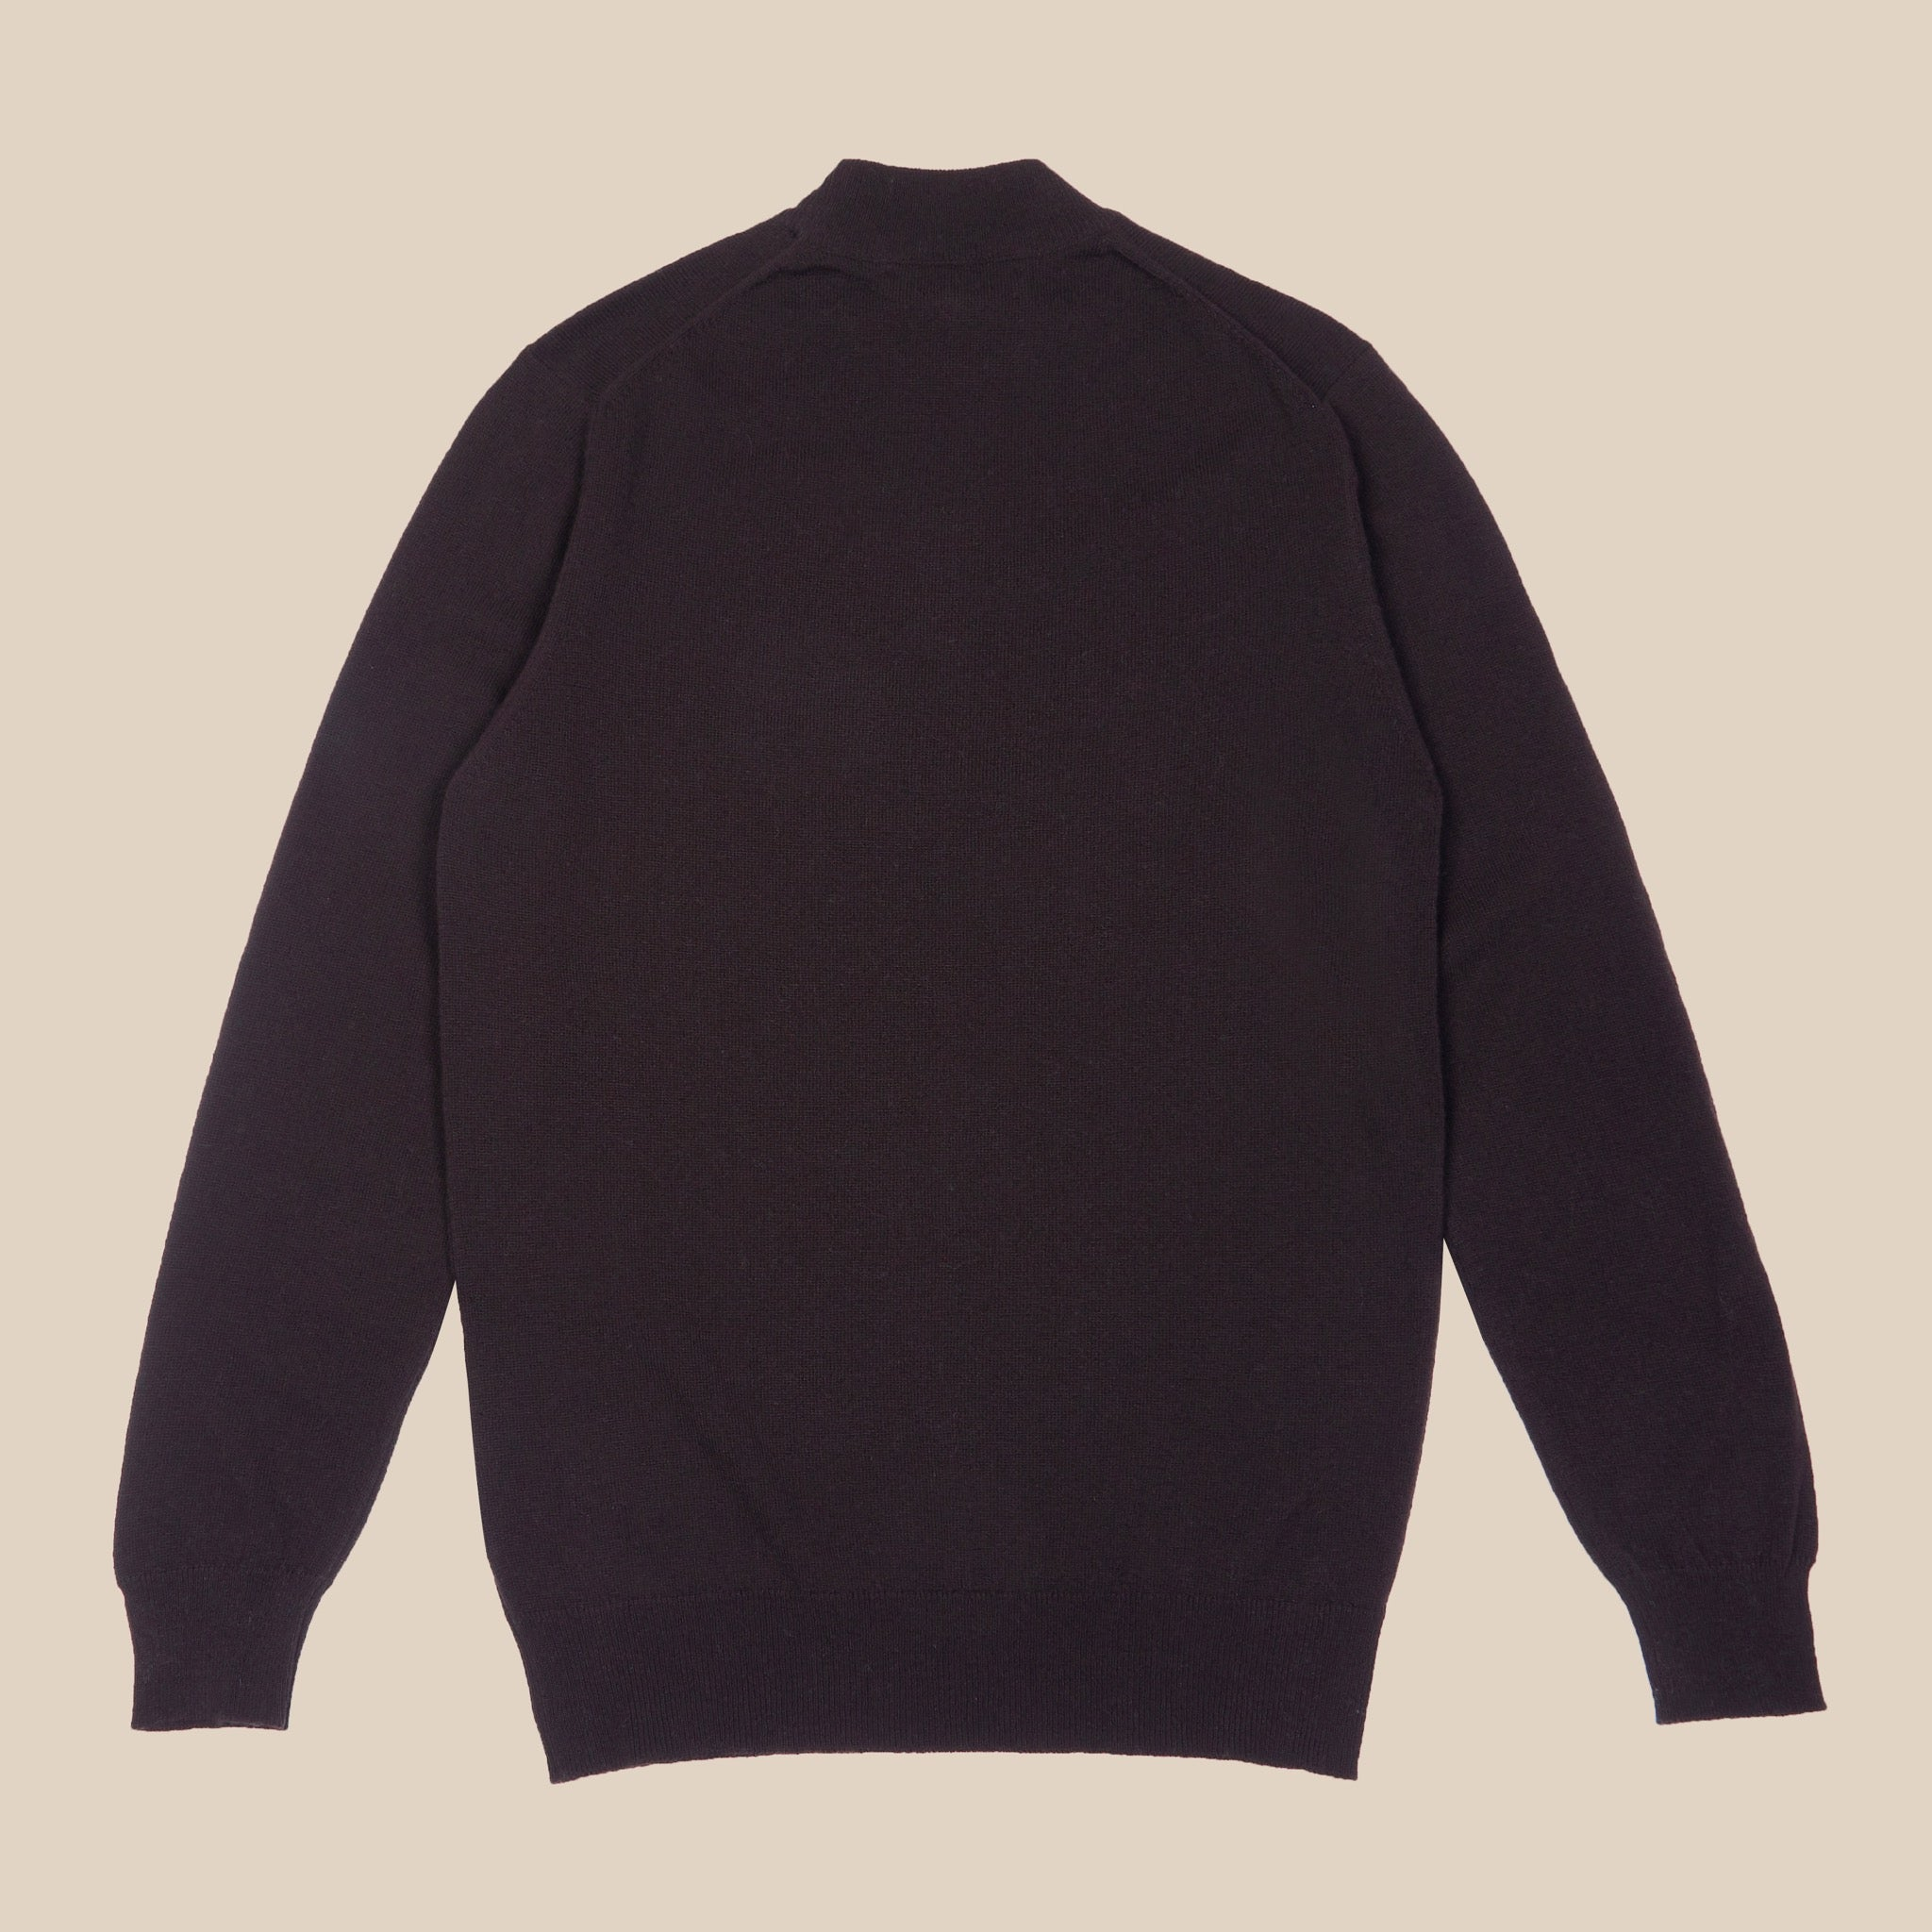 Superfine lambswool mock neck in dark brown